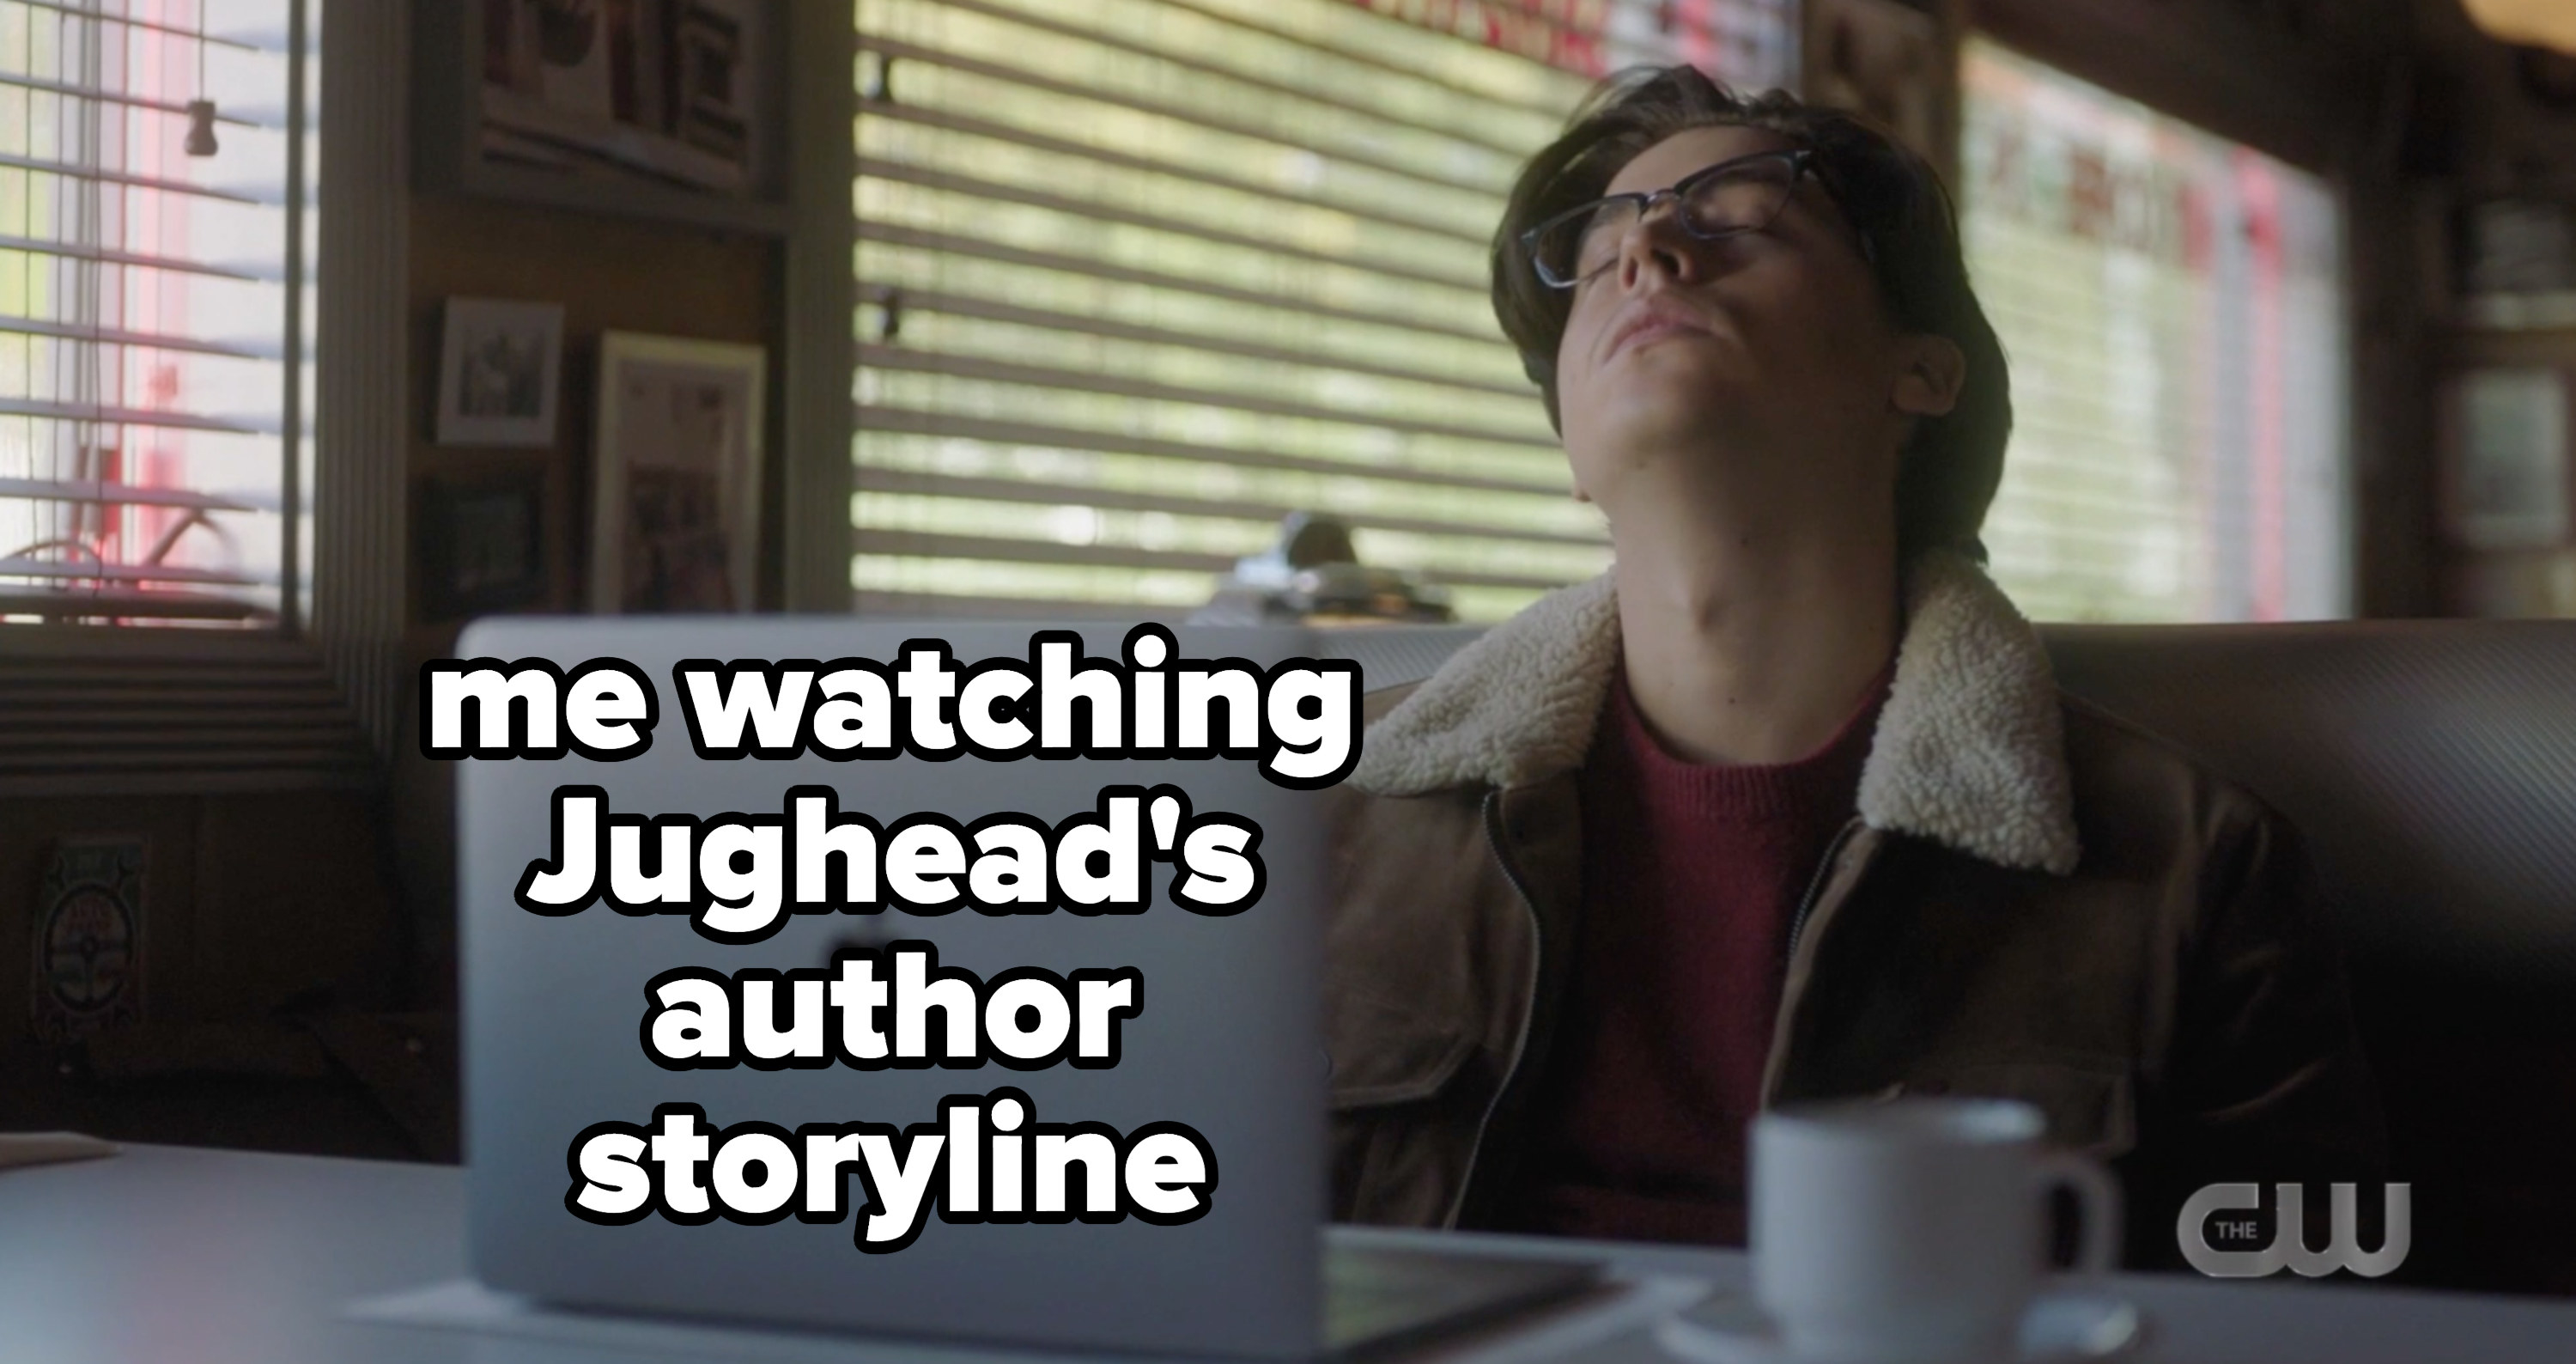 Jughead trying to write with the caption me watching Jughead's author storyline